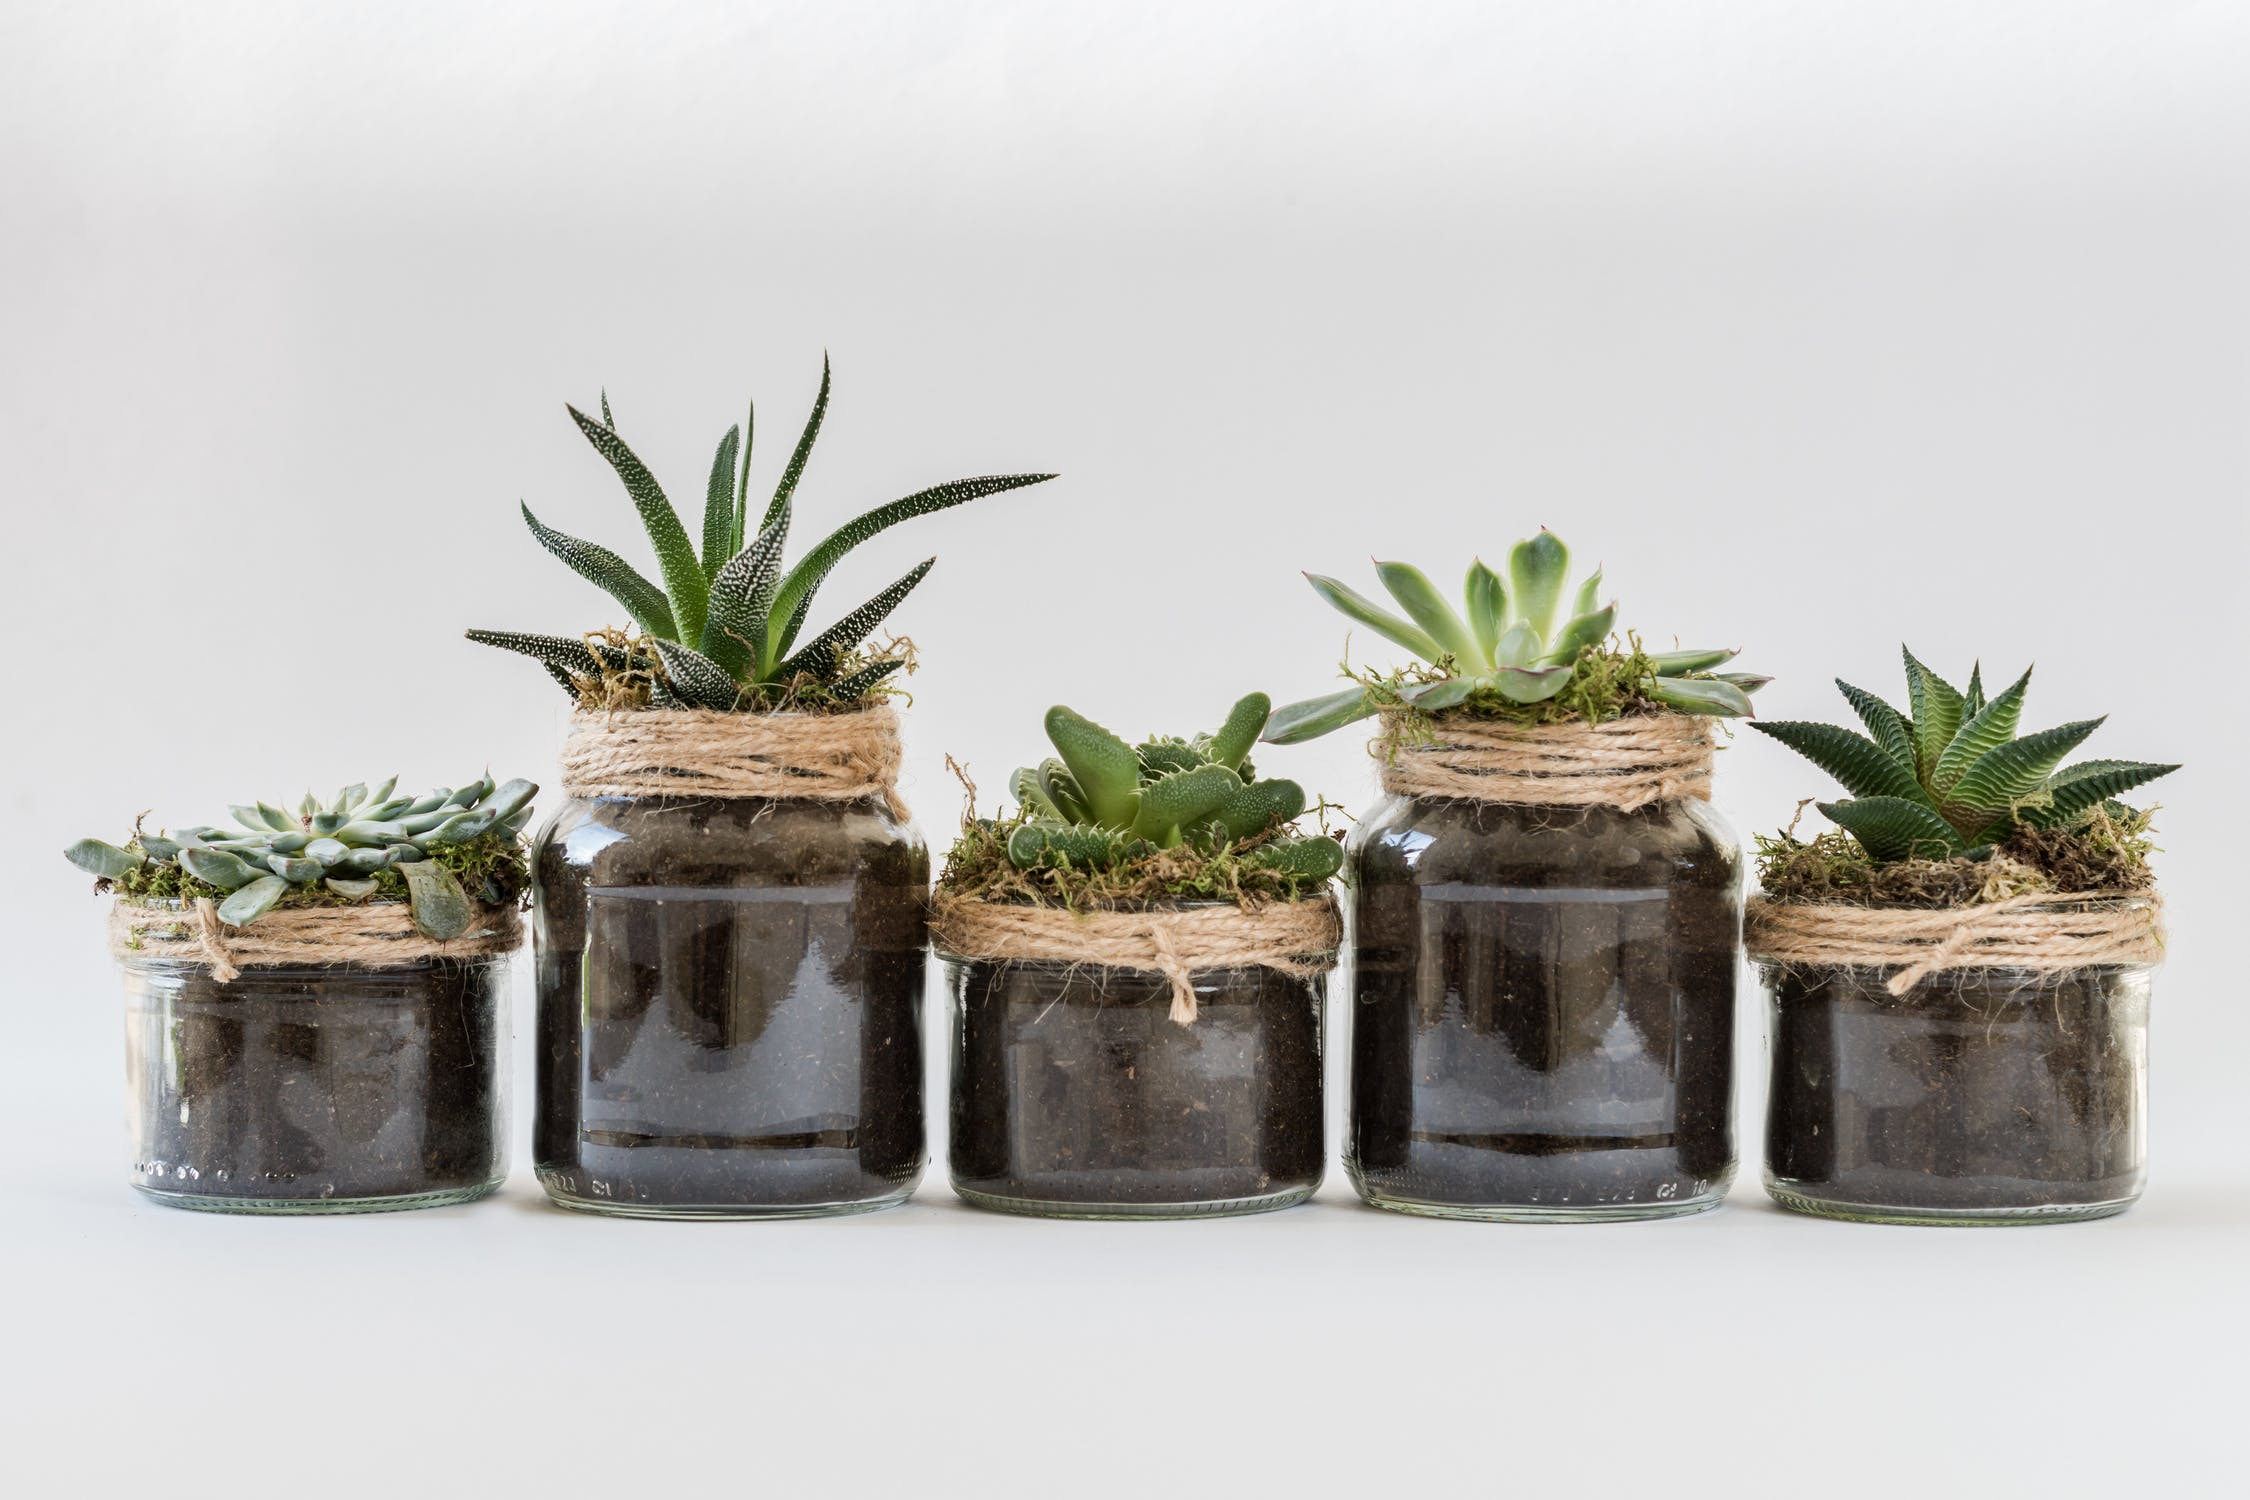 Five succulents lined up in a row.